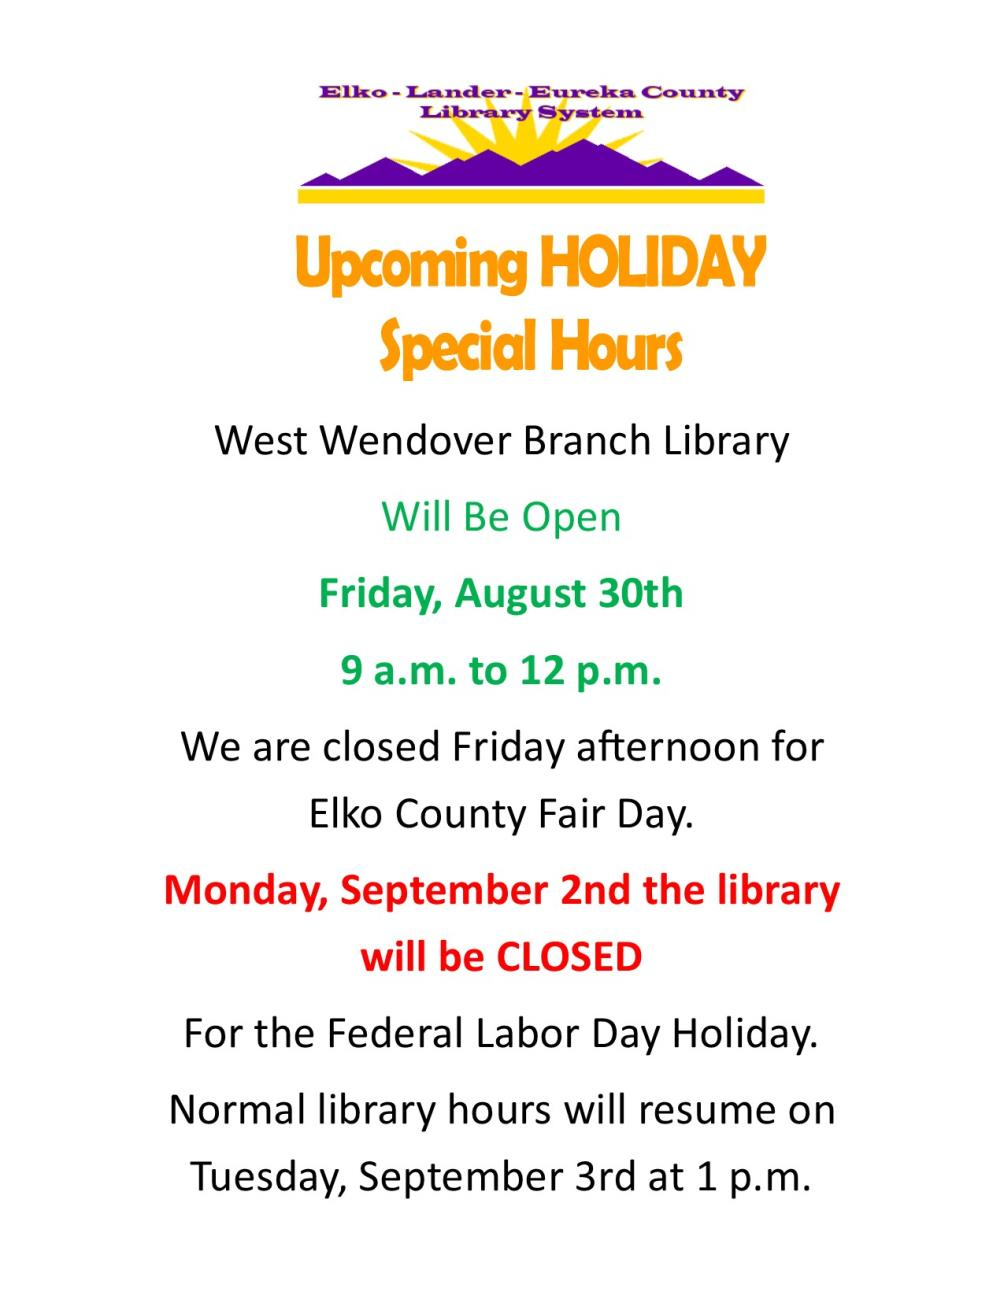 West Wendover Library Upcoming Holiday Hours